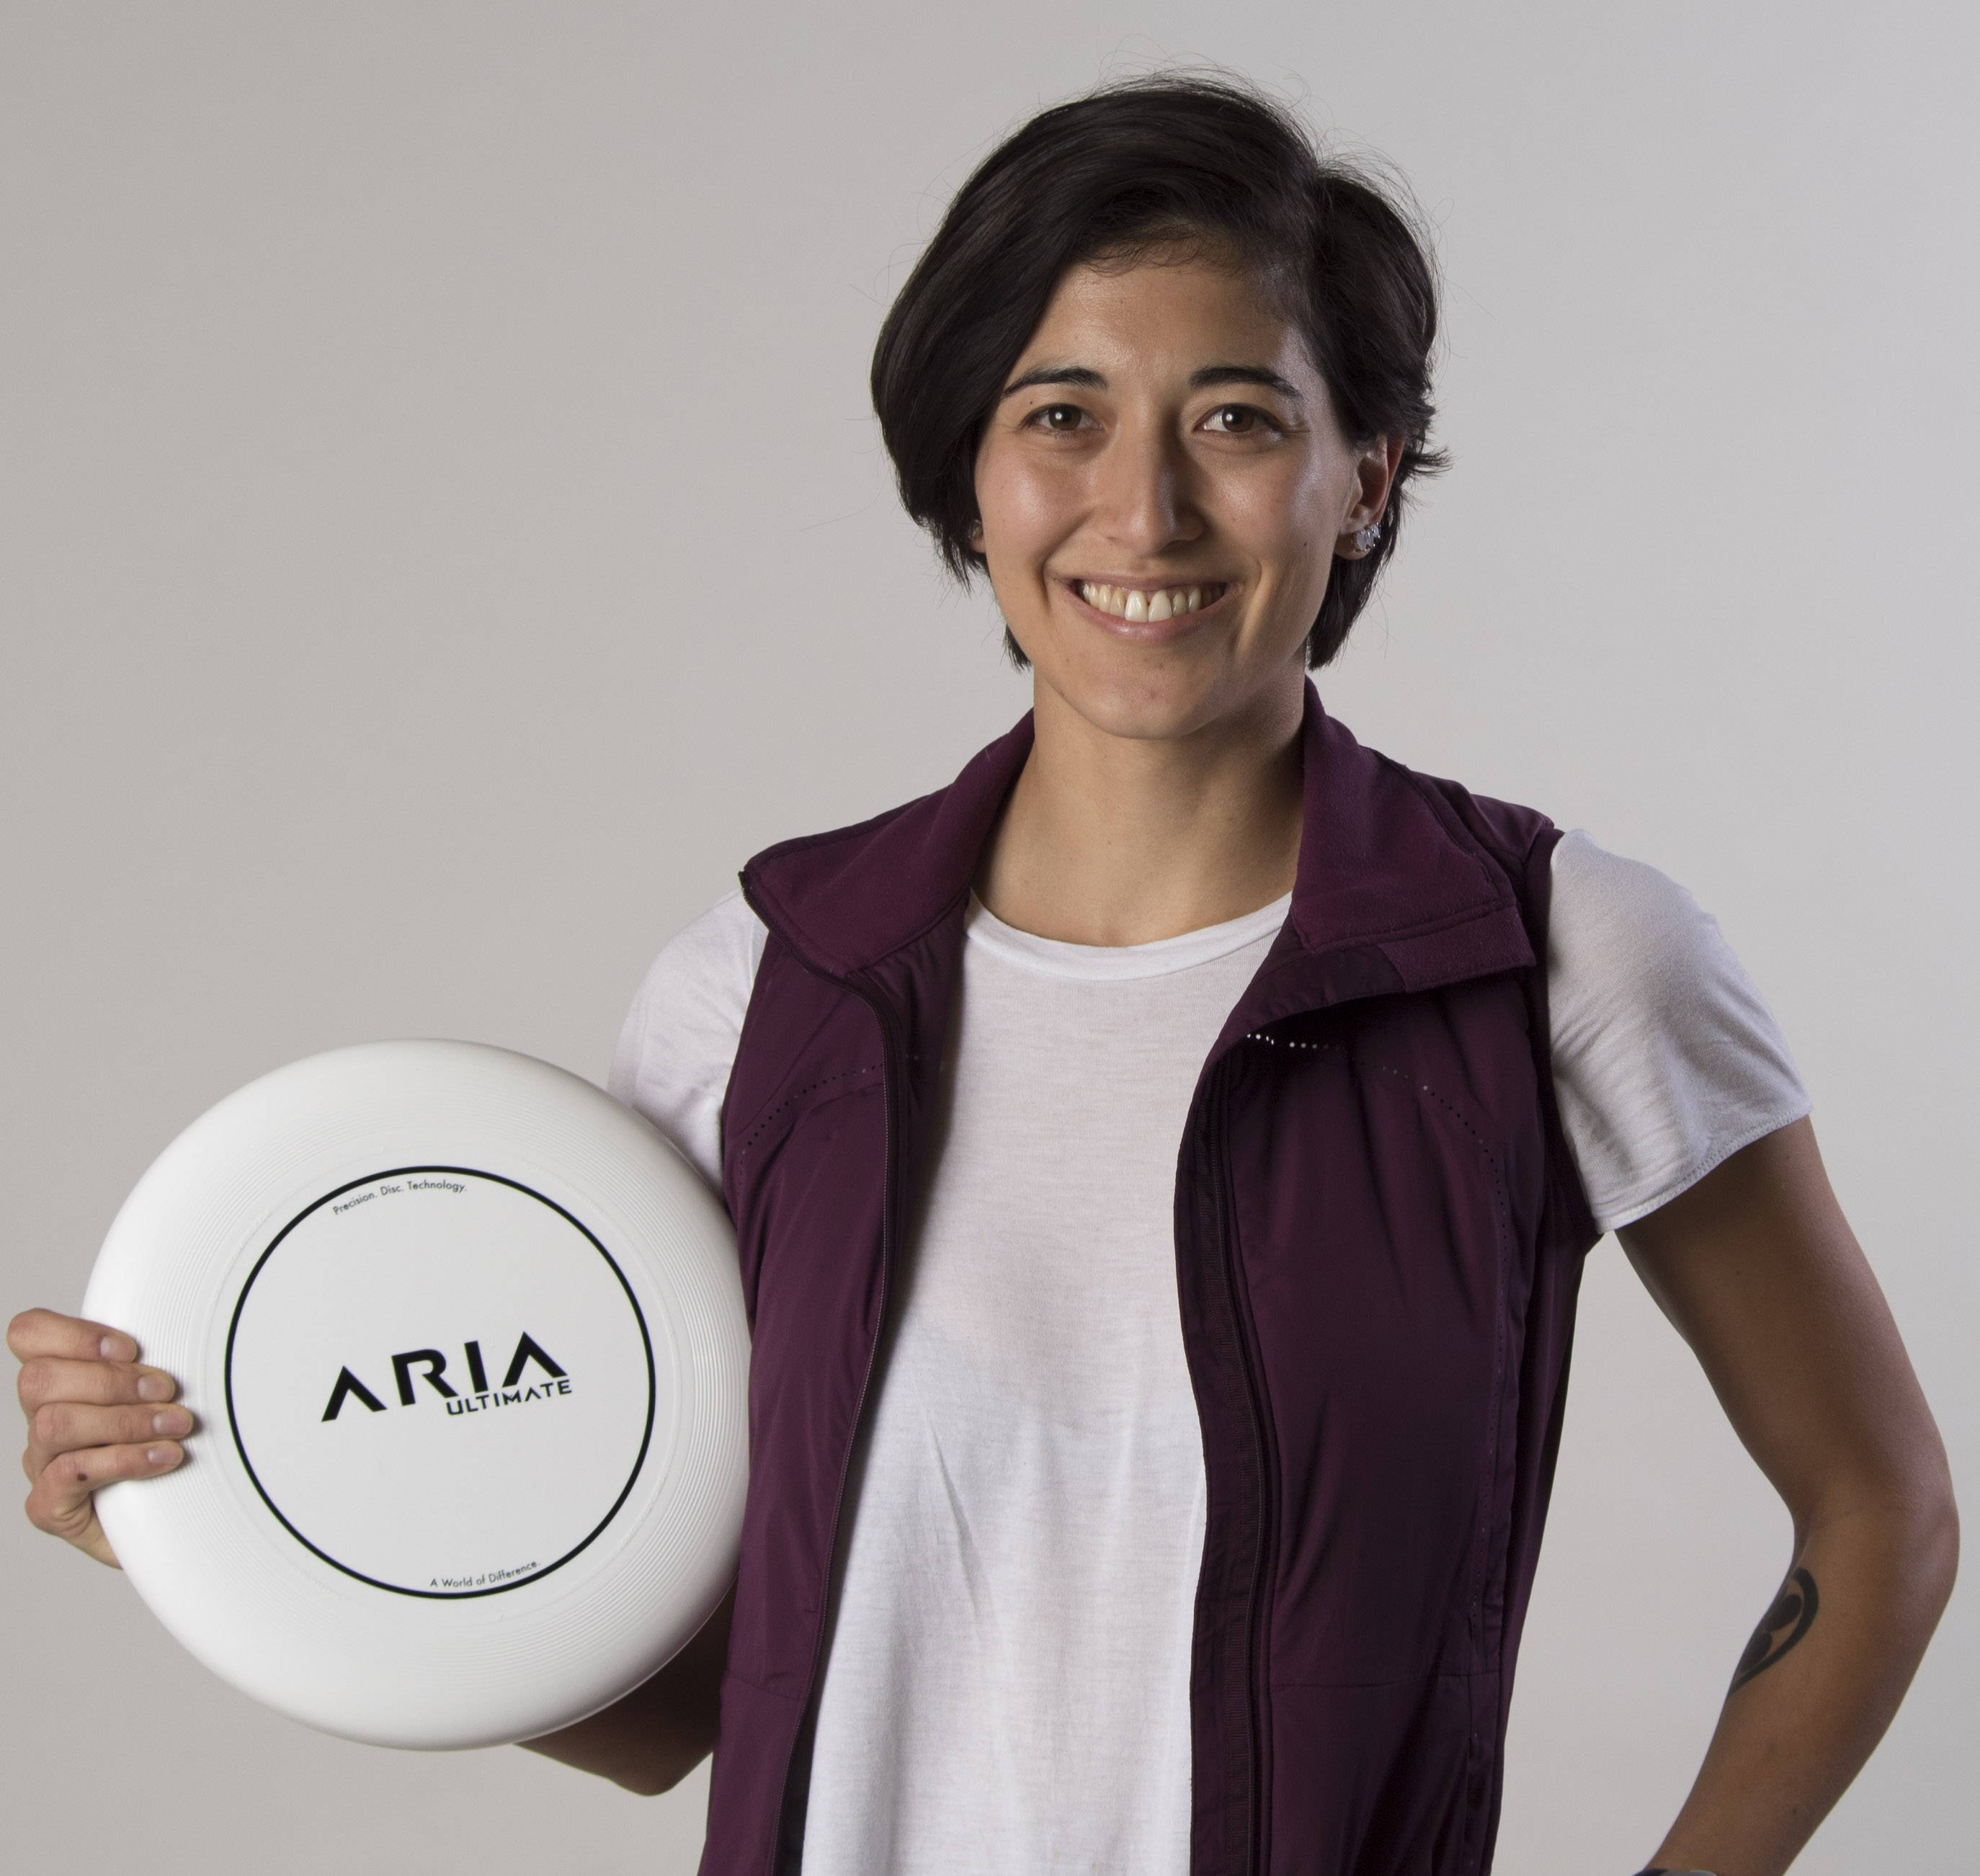 ARIA professional official ultimate flying disc for the sport commonly known as 'ultimate frisbee' rena kawabata